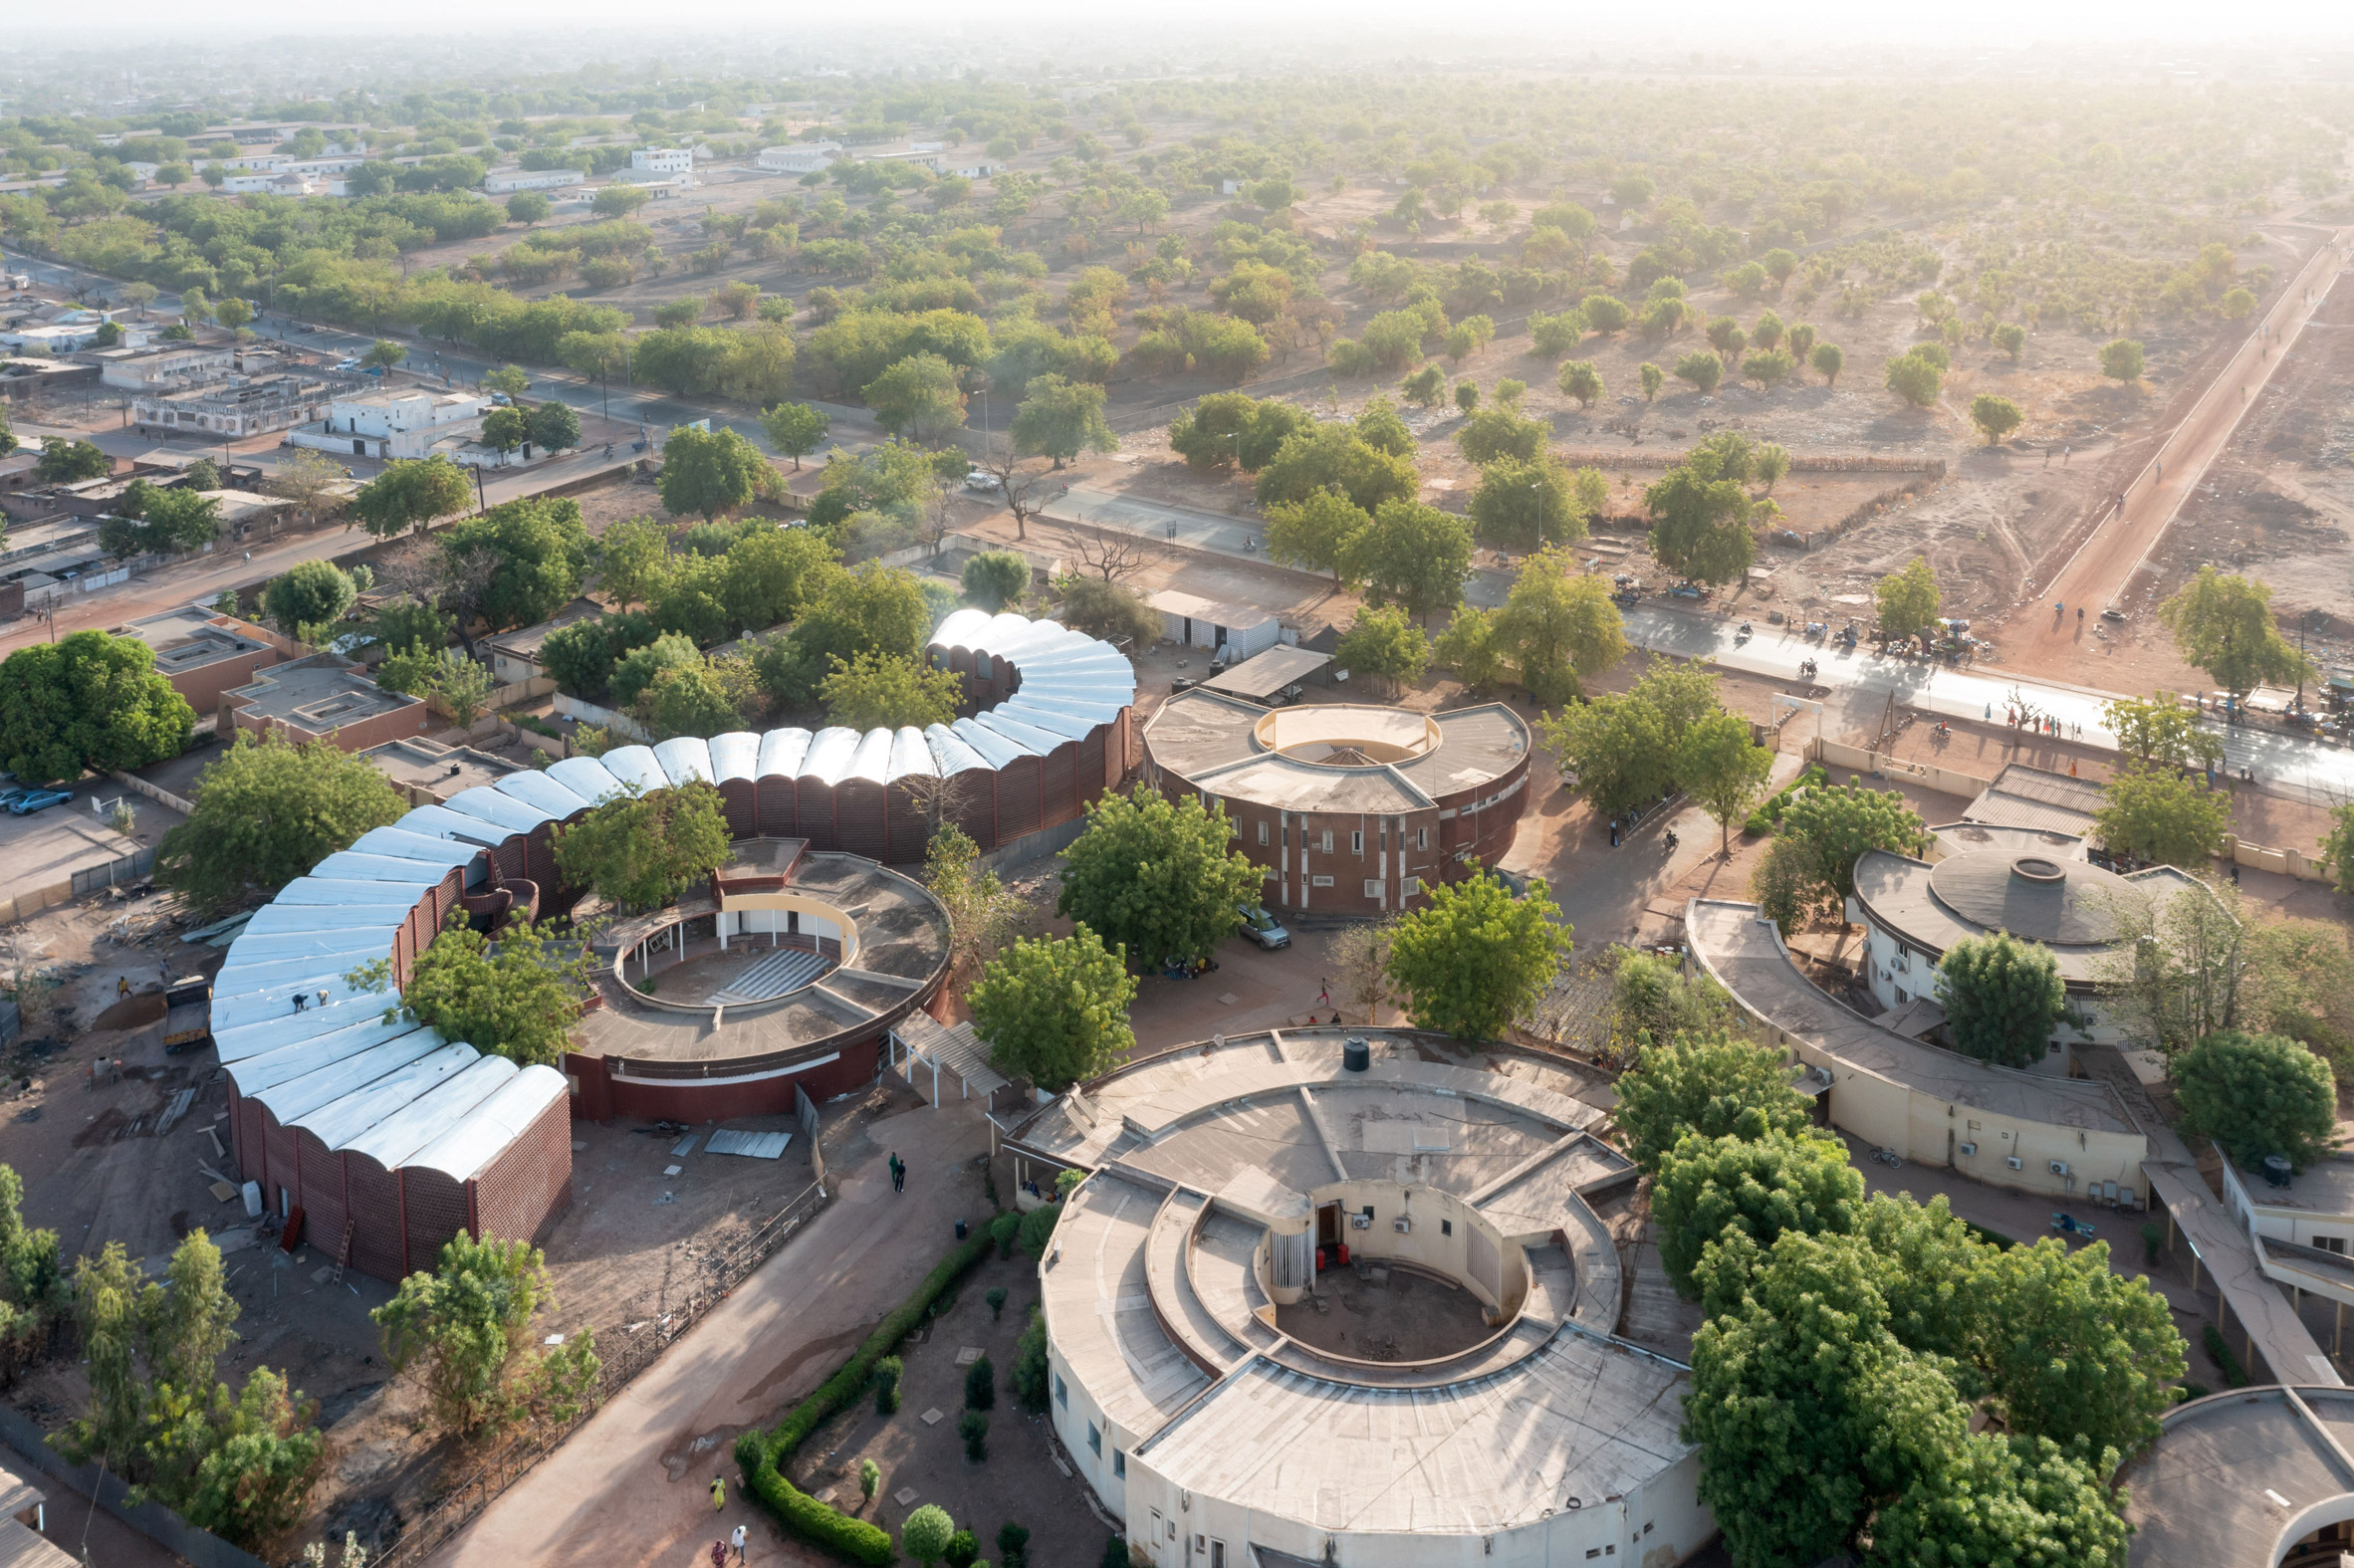 Maternity and Paediatric Hospital in Tambacounda, Senegal, by Manuel Herz Architects